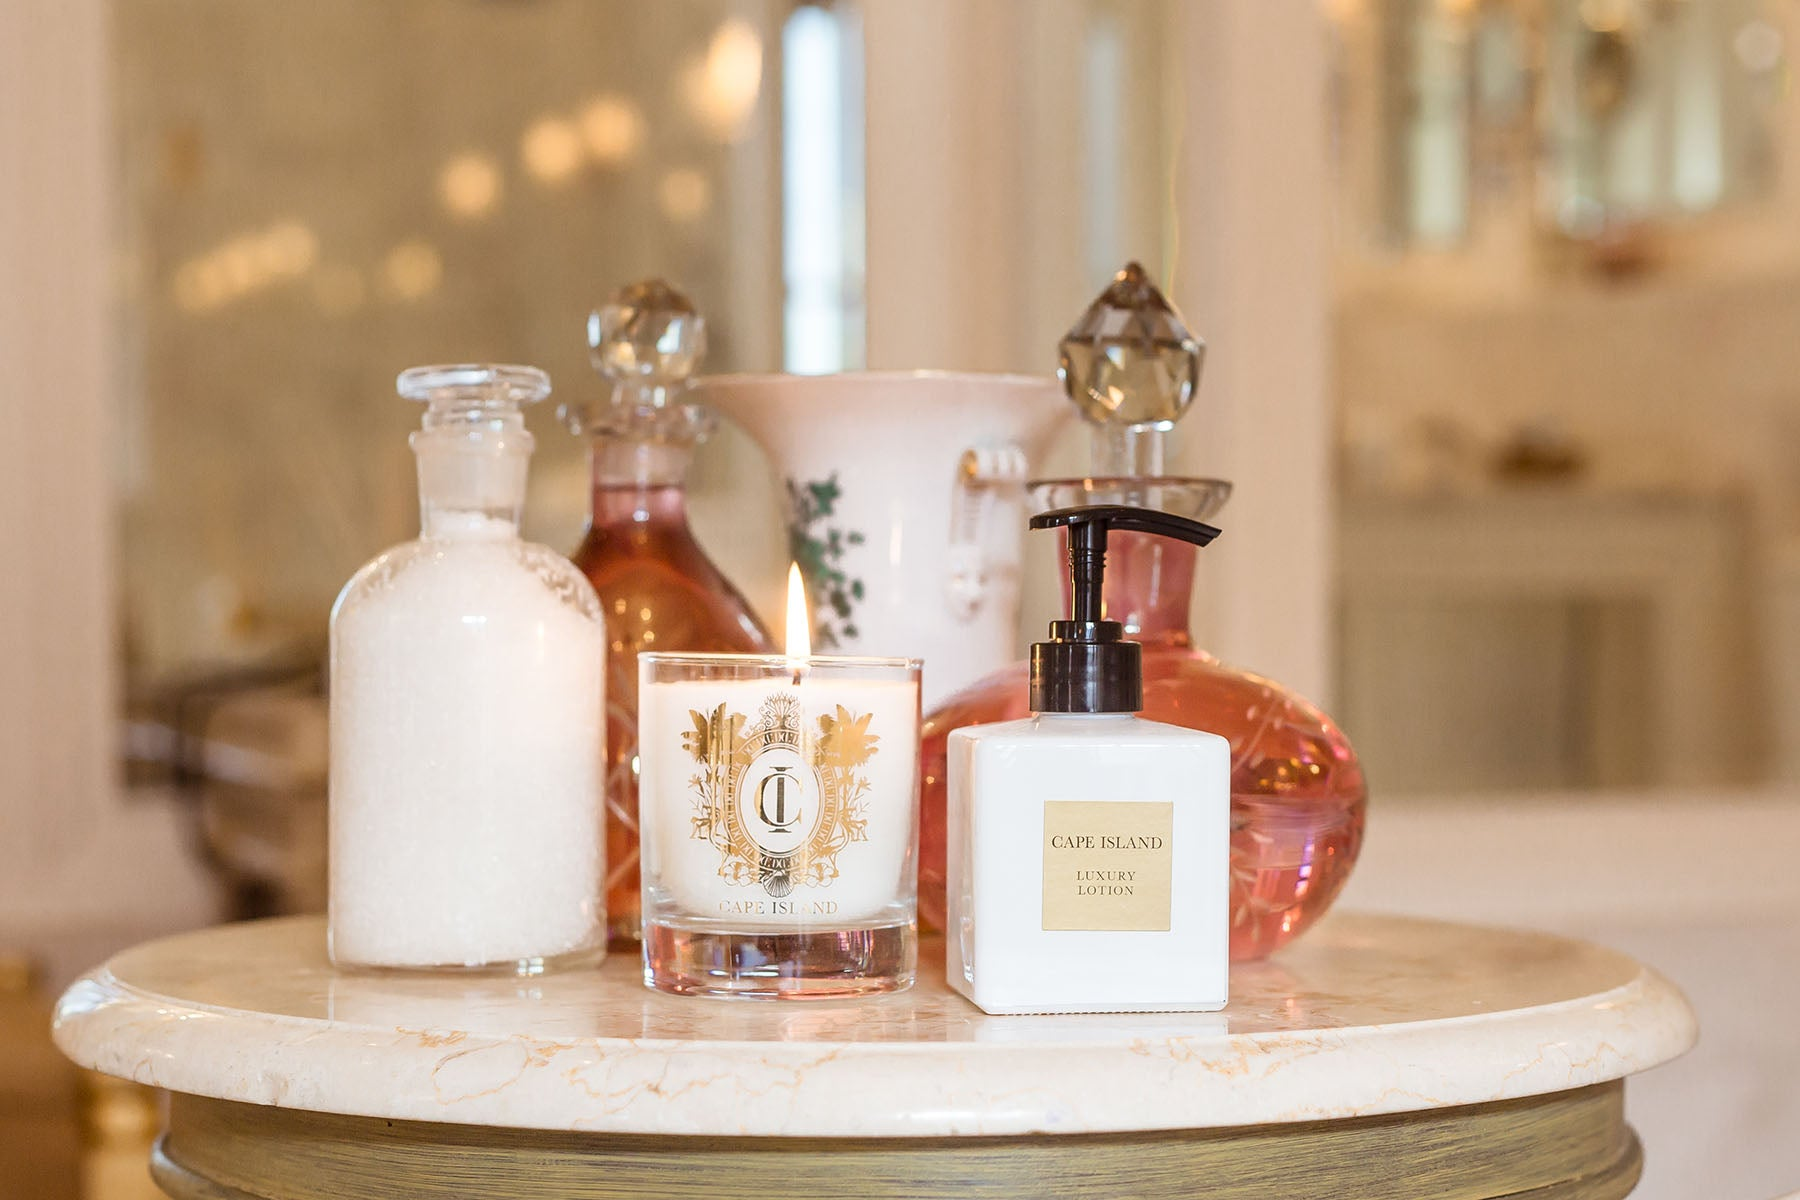 The Cape Island Summer Vineyard candle and loction Cape Island luxury candles, soap products and home fragrances are available at Sarza home goods and furniture store in Rye New York.